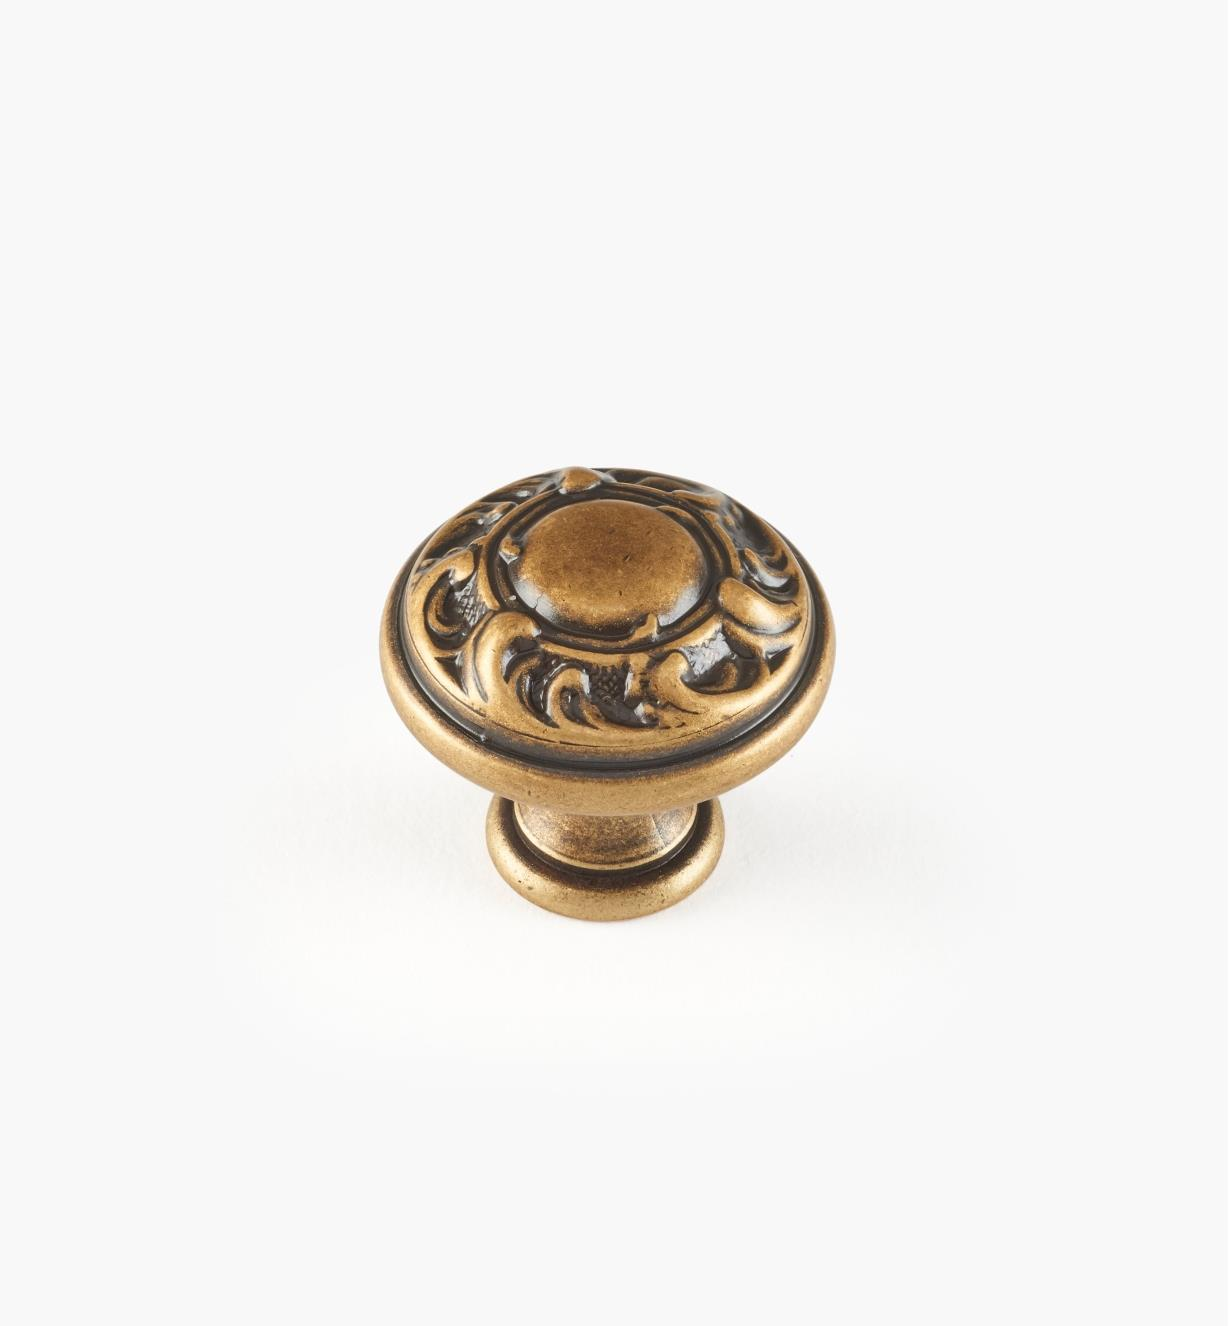 01A5110 - 25mm x 23mm Louis XV Knob